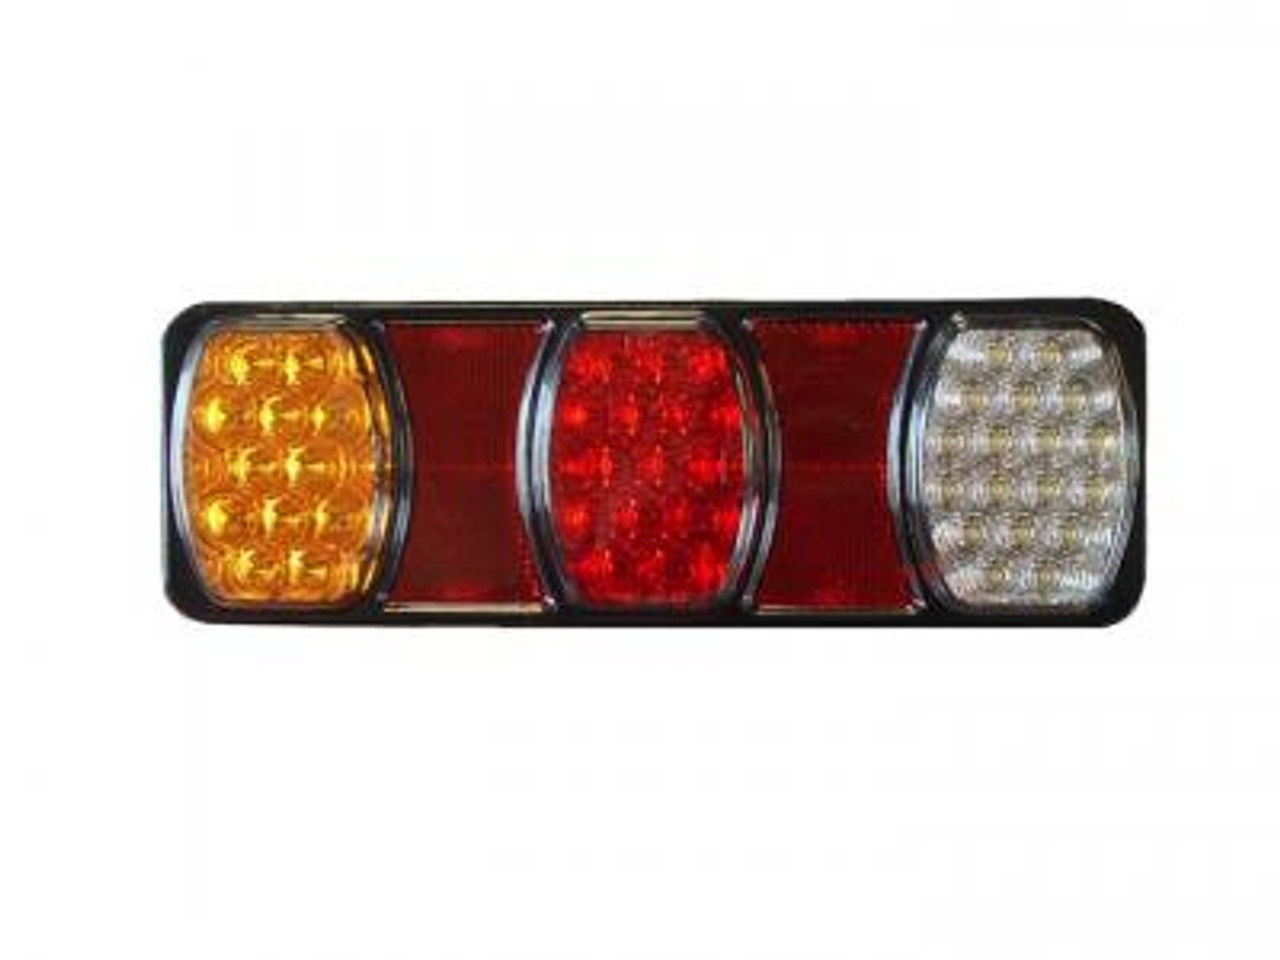 226RV. Compact LED Tail Light. Stop, Tail Indicator & Reverse Lamp with built-in Reflectors. Quality, Tough Light. Caravan Friendly. Multi-Volt 12 & 24 Volt Systems. BR80ARW. Triple Module LED Light.  Truck, Trailer, Ute or Caravan Tail Light Assembly. Built-in Reflector. Great Quality Tail Light. Weather, Vibration and Dust Proof. Ultimate LED